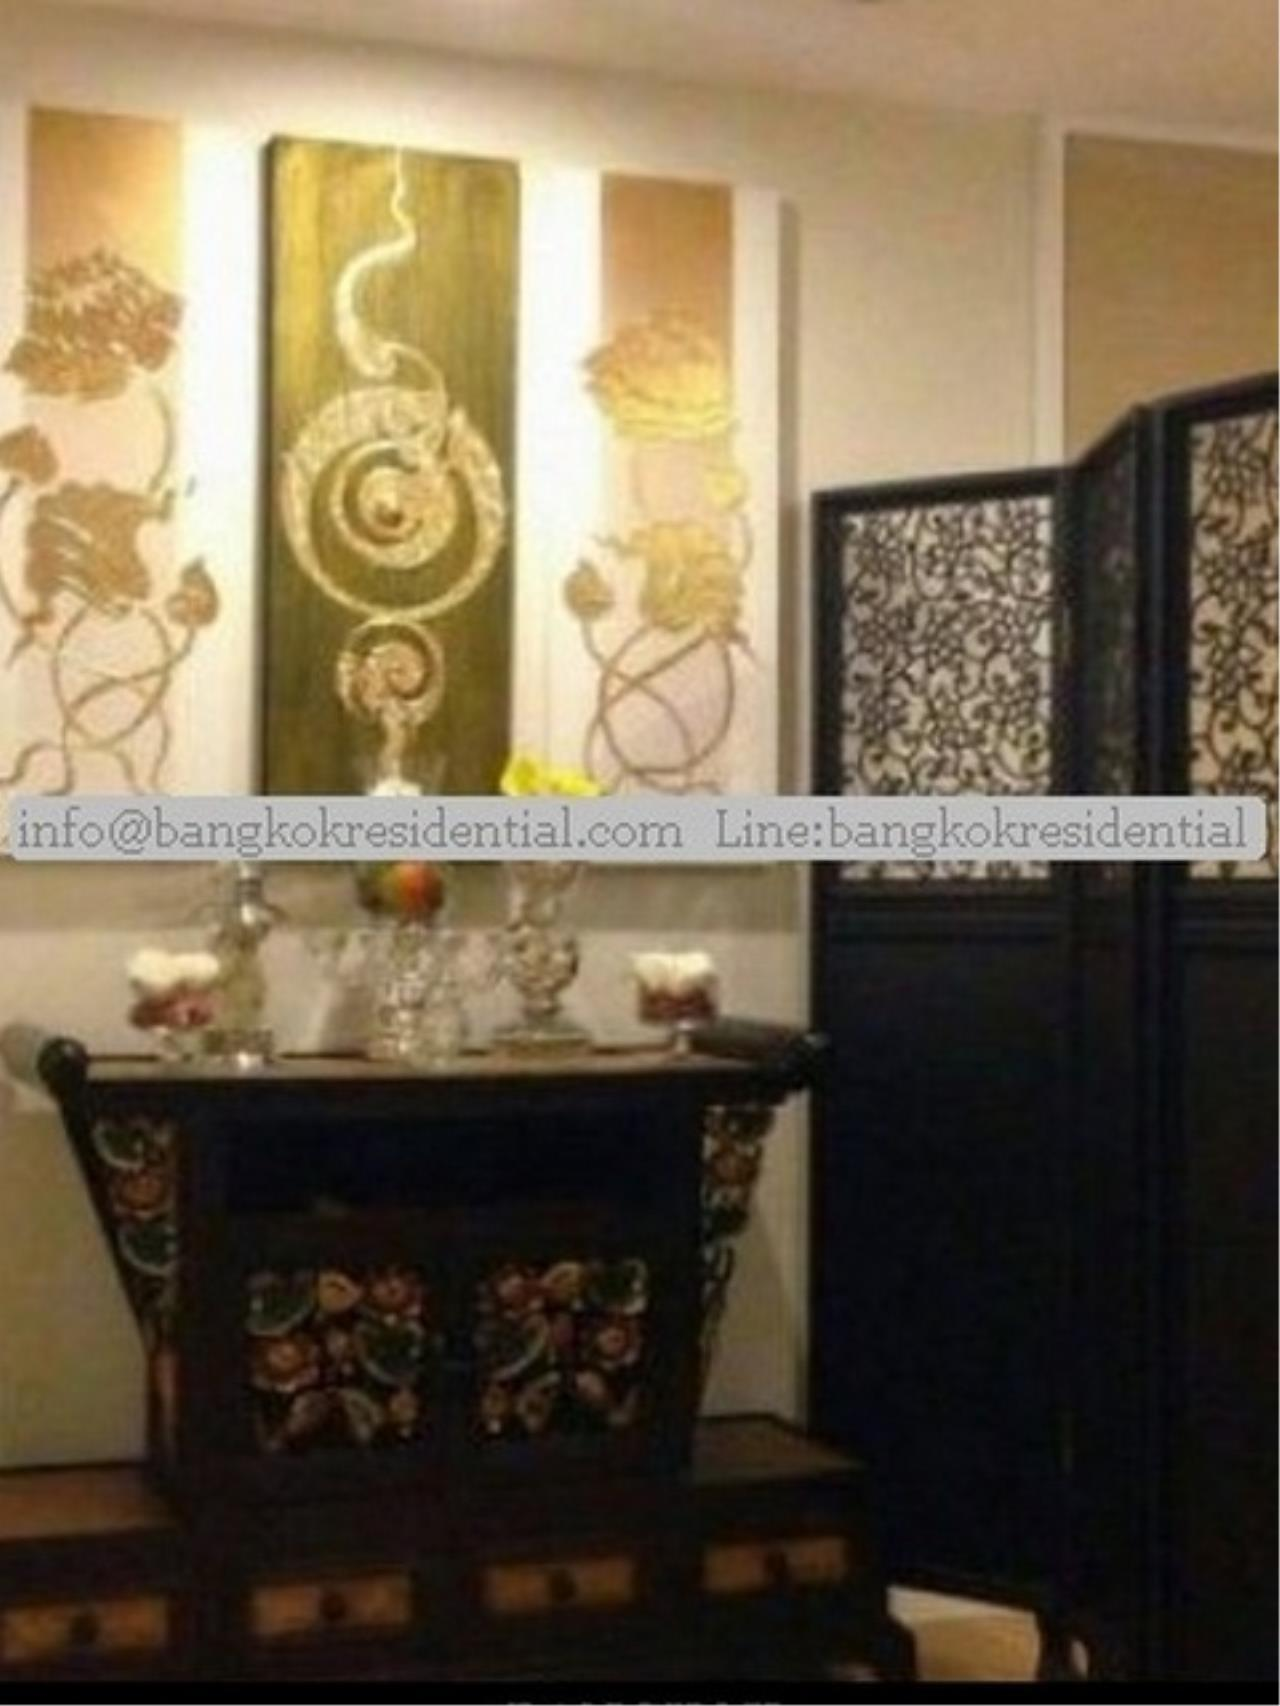 Bangkok Residential Agency's 2BR Collezio Sathorn-Pipat For Rent (BR3338CD) 2